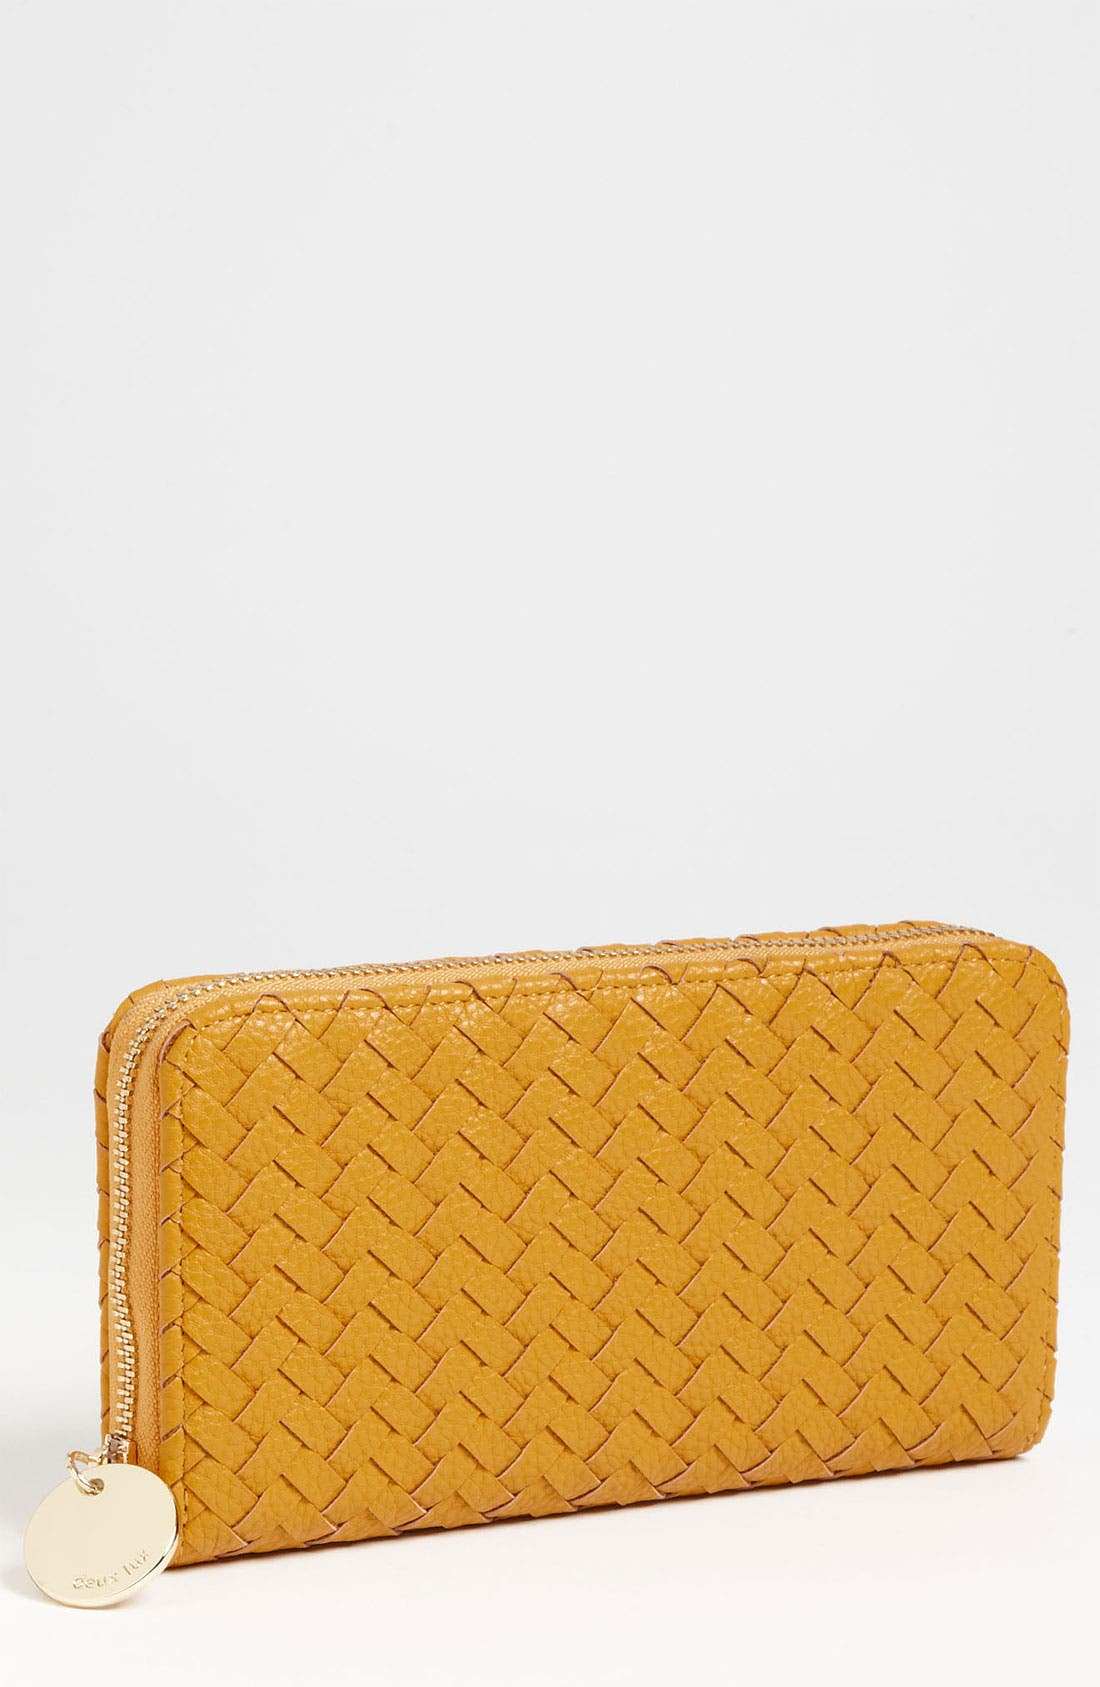 Alternate Image 1 Selected - Deux Lux 'Gramercy' Wallet